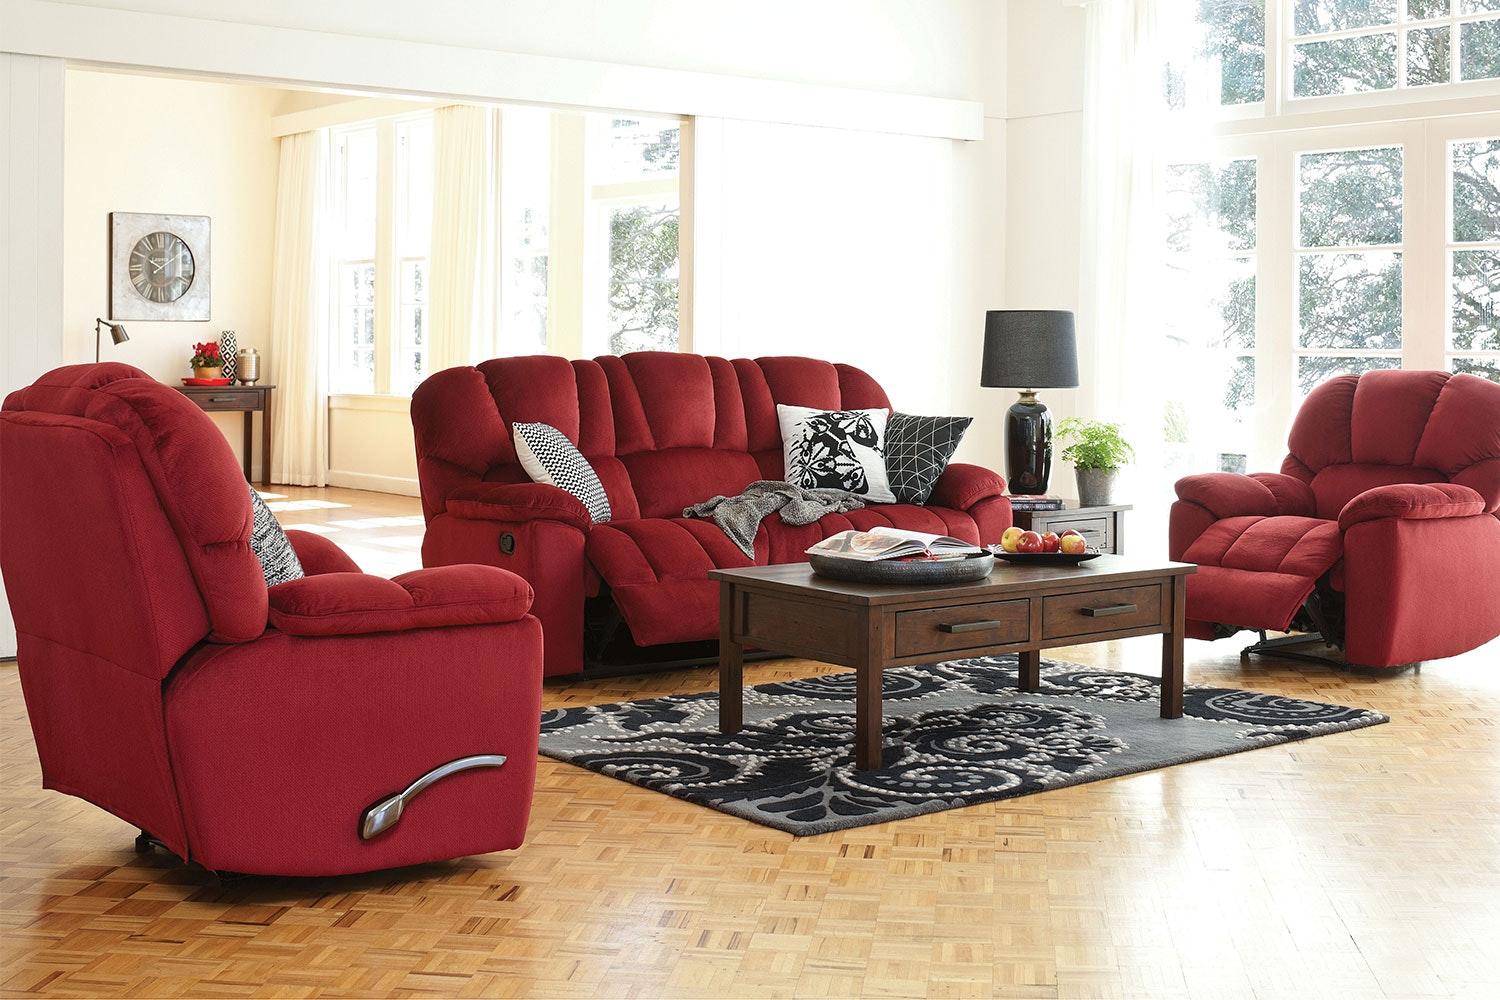 Scottland 3 Piece Fabric Recliner Lounge Suite by John Young Furniture - Bordeaux